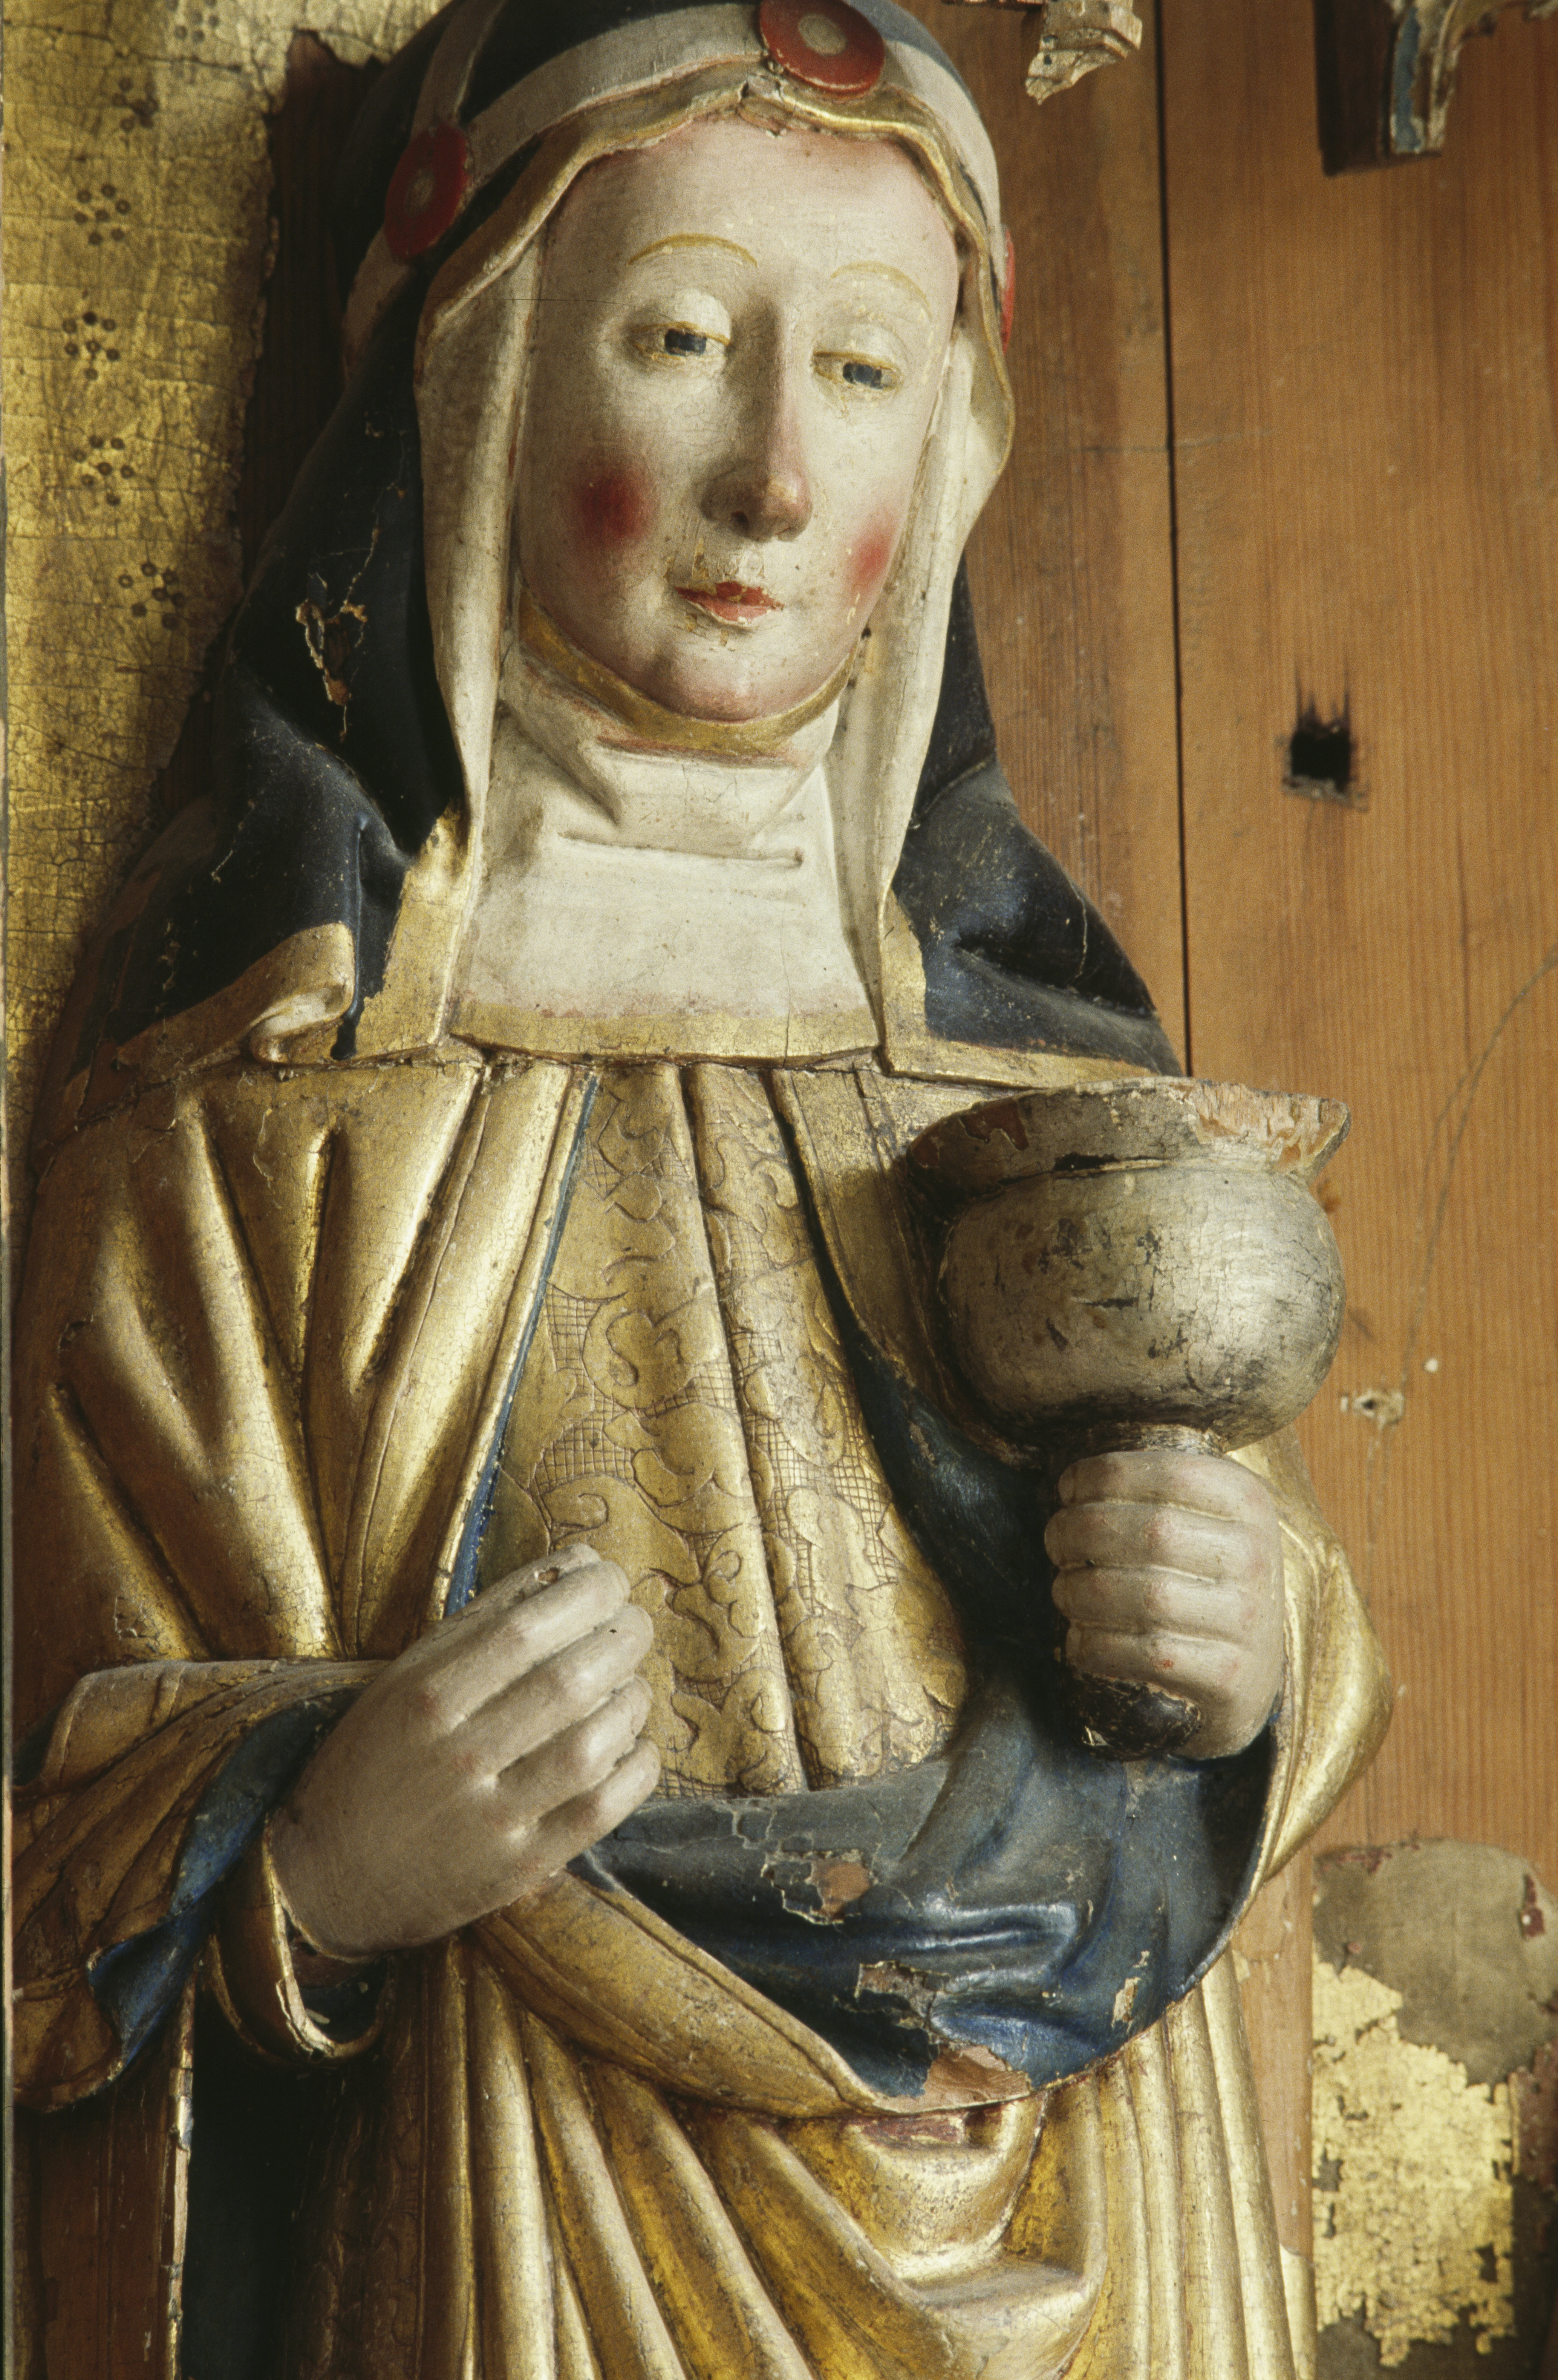 Sculpture depicting Katarina Ulfsdotter, early 1500s. Detail of altar screen in Trönö old church by unknown artist. Photo: Lennart Karlsson. Historiska museet (9004530)